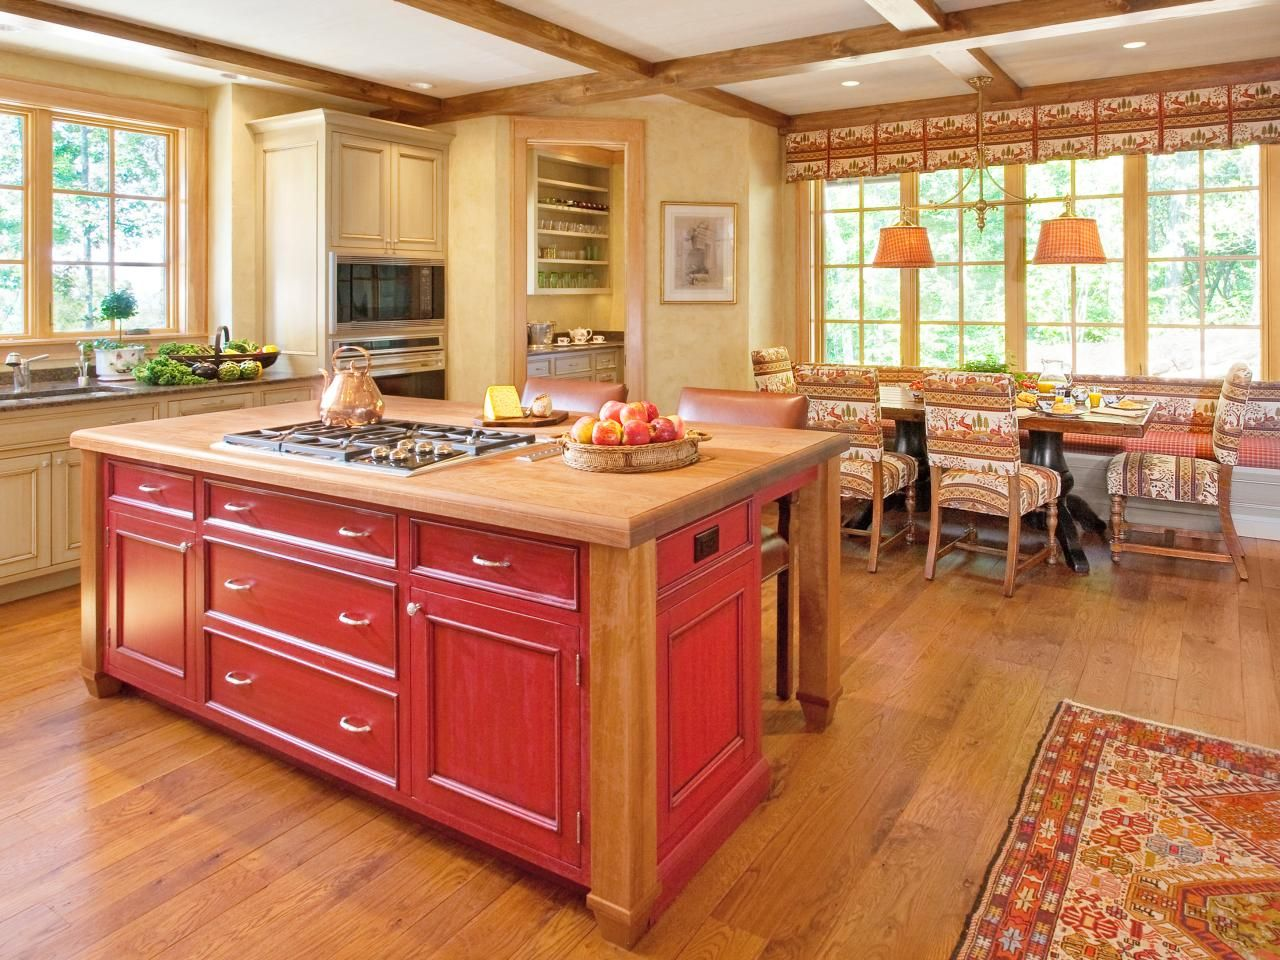 yellow country kitchens. Red Country Kitchens Yellow I